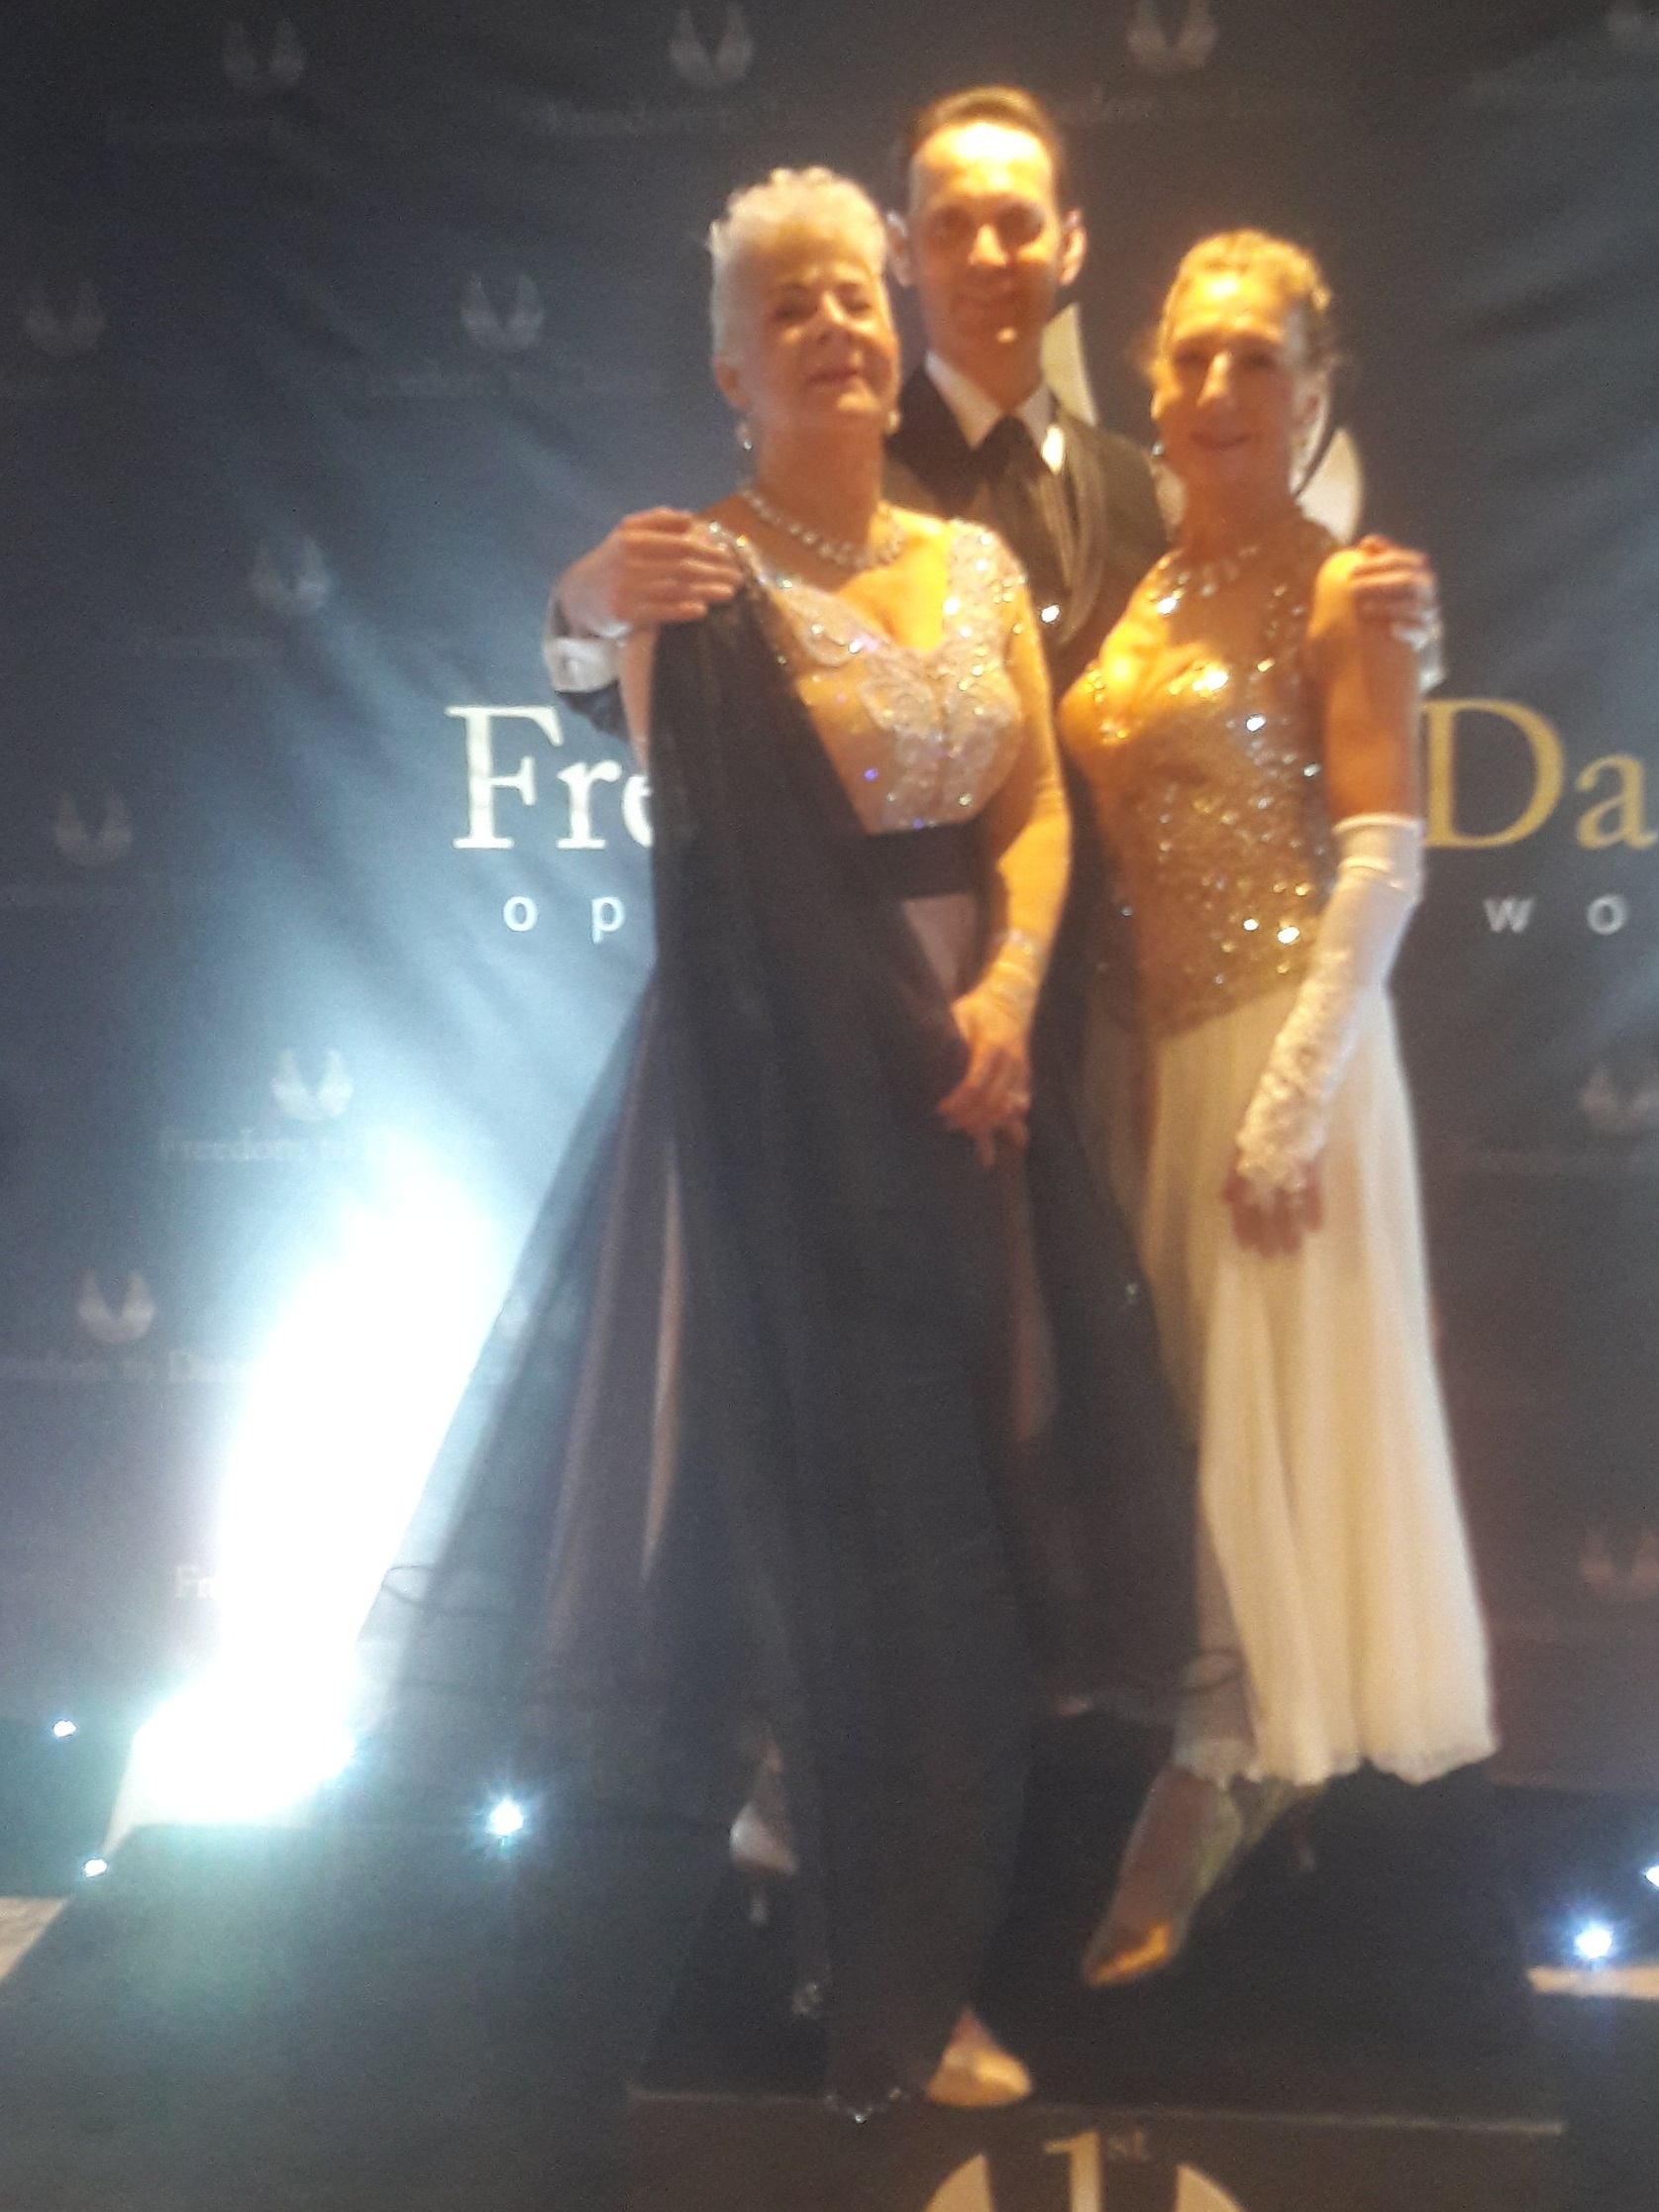 Terri Richmond 2nd place over 65 and Paula Moxham 3rd and 6th in ovr 50s  world Pro-Amateur at the Freedom to Dance Competition May 11th 2019.